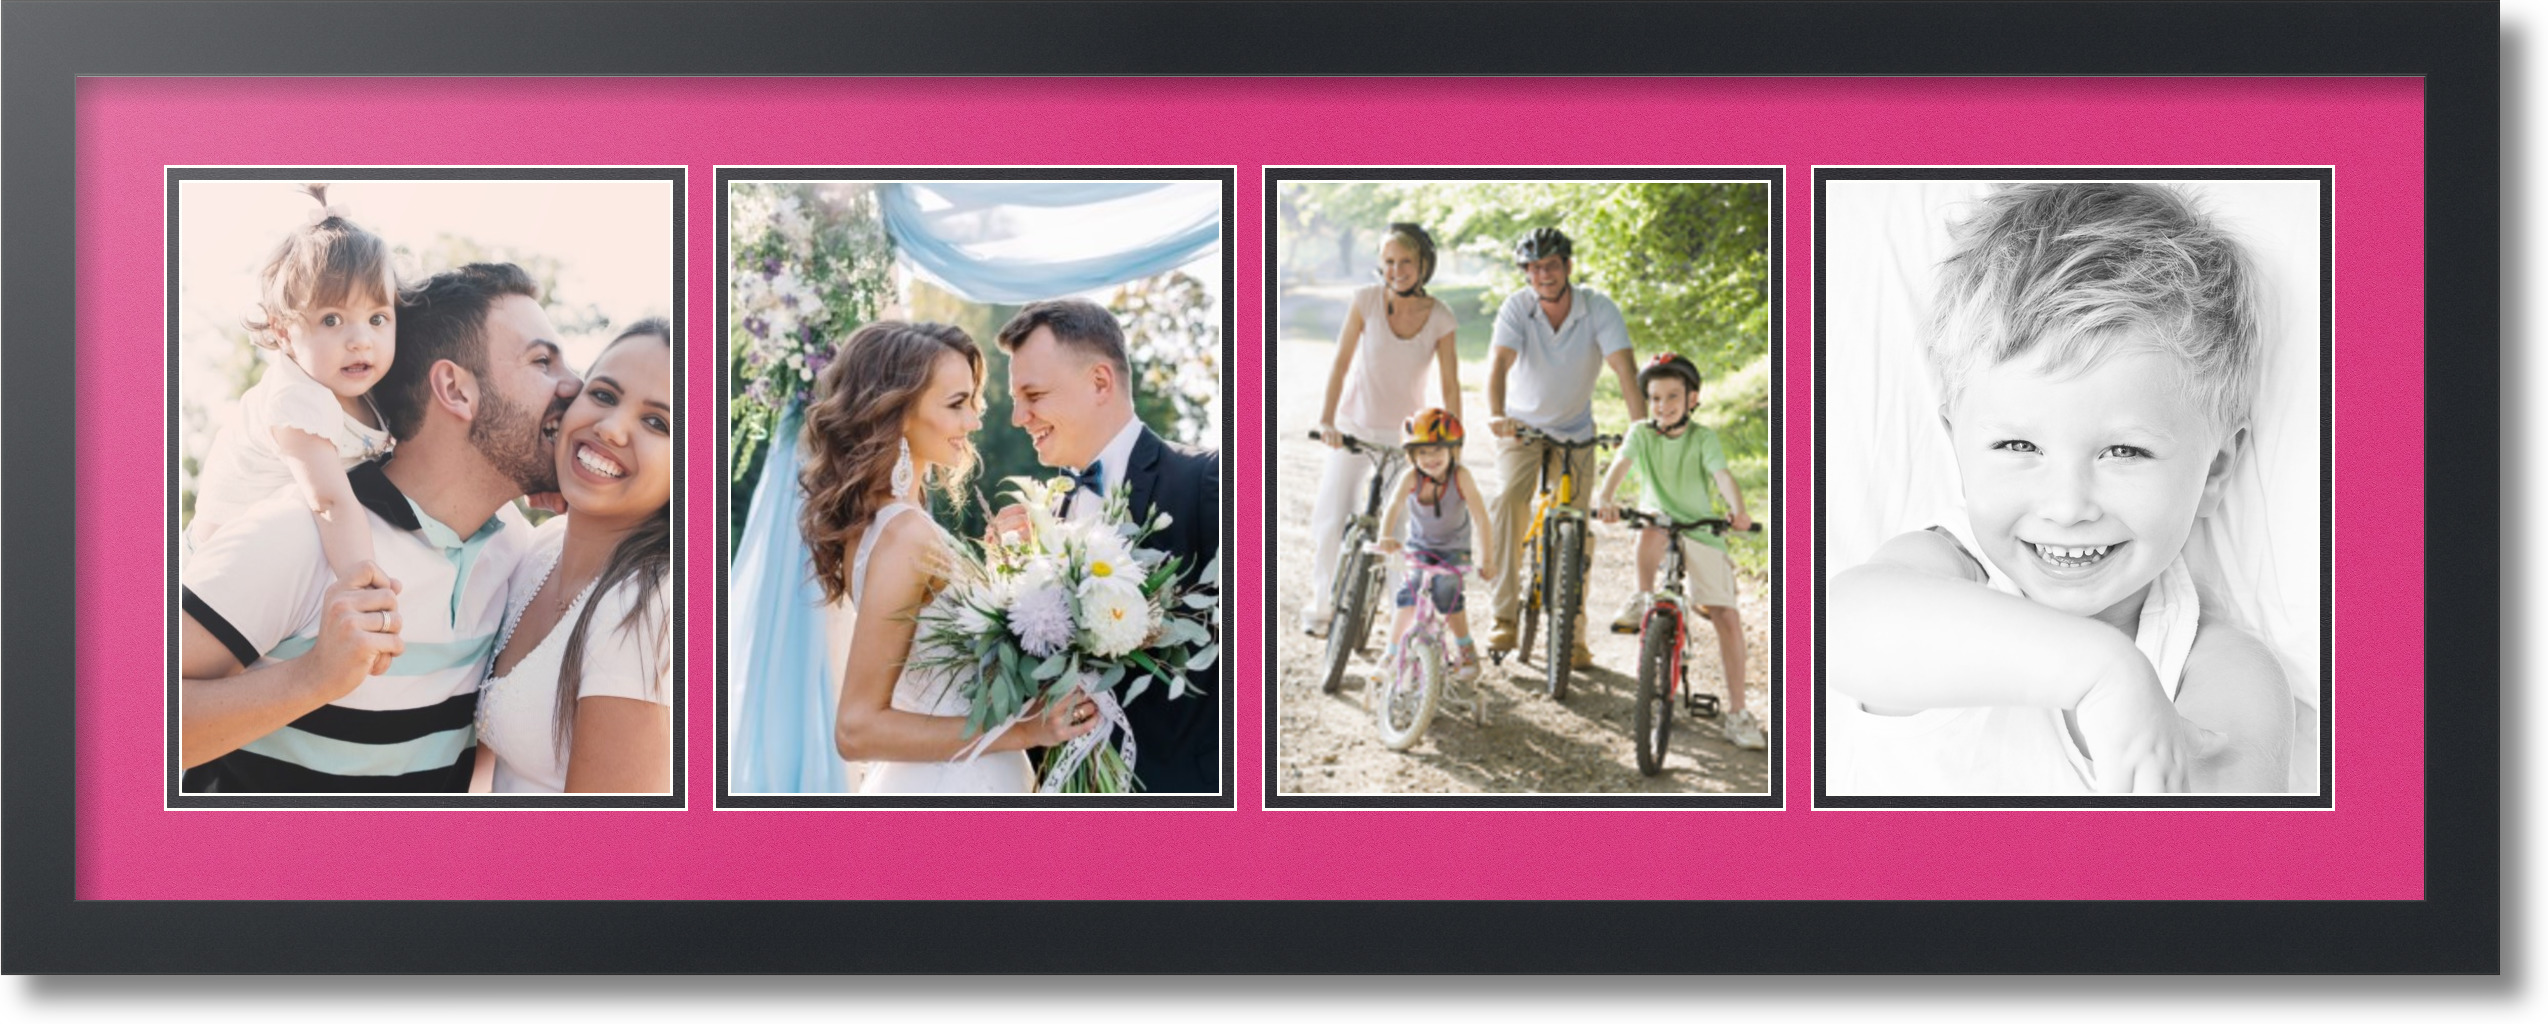 Arttoframes collage mat picture photo frame 4 8x10 openings arttoframes collage mat picture photo frame 4 8x10 jeuxipadfo Image collections